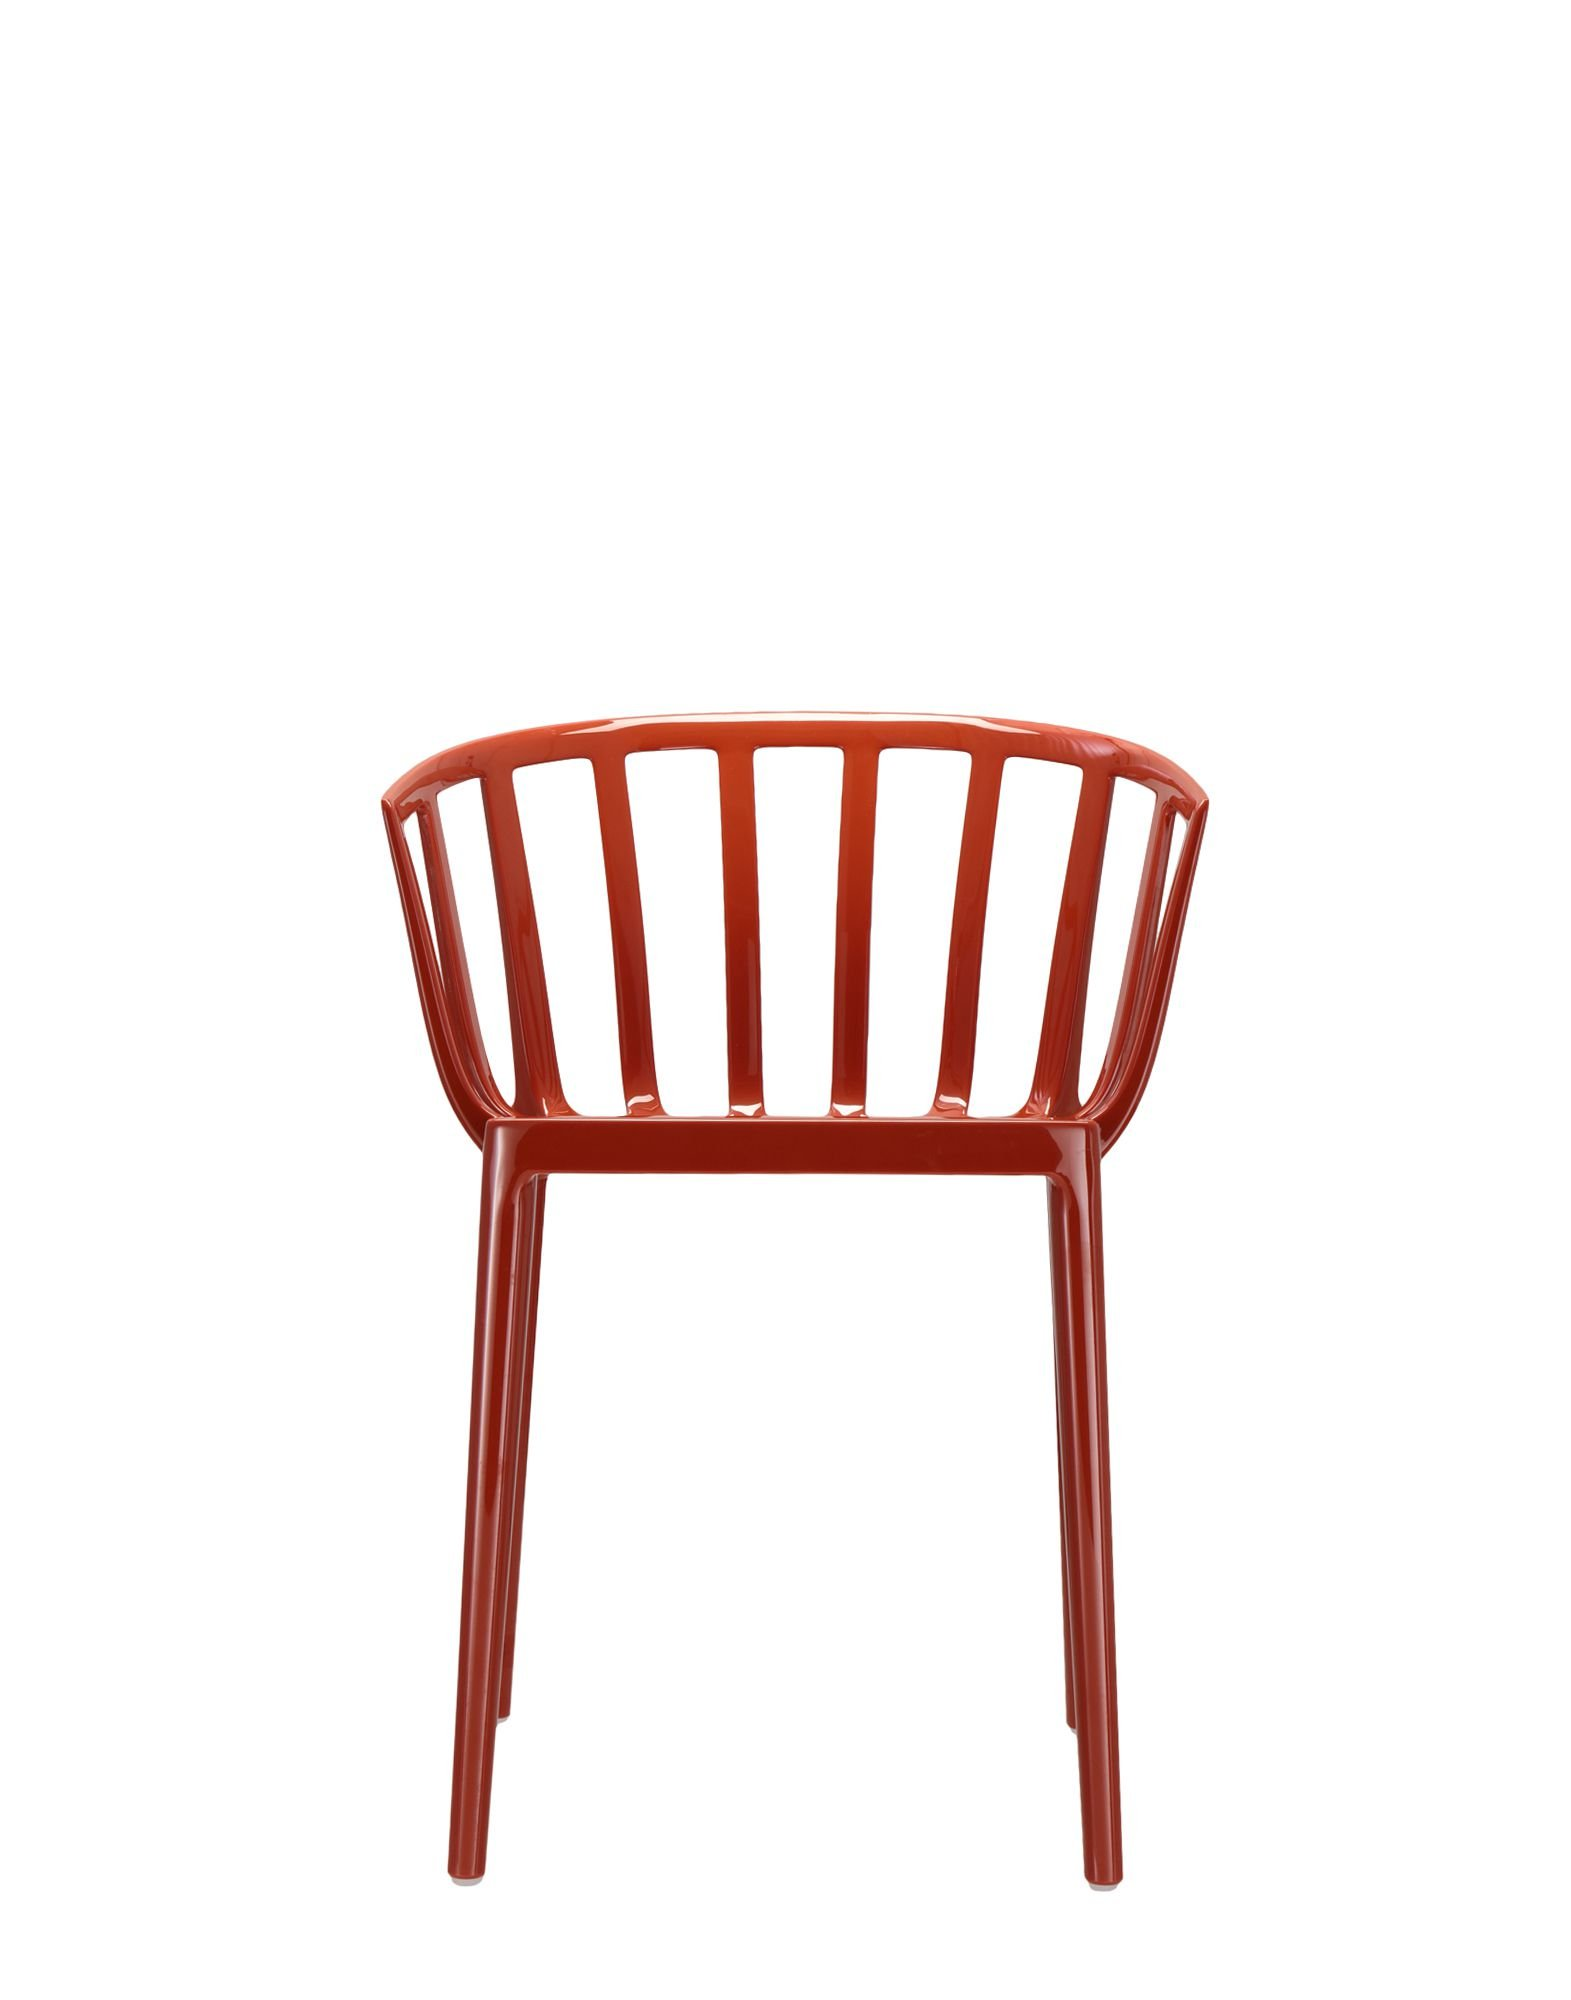 Venice Chair from Kartell, designed by Philippe Starck